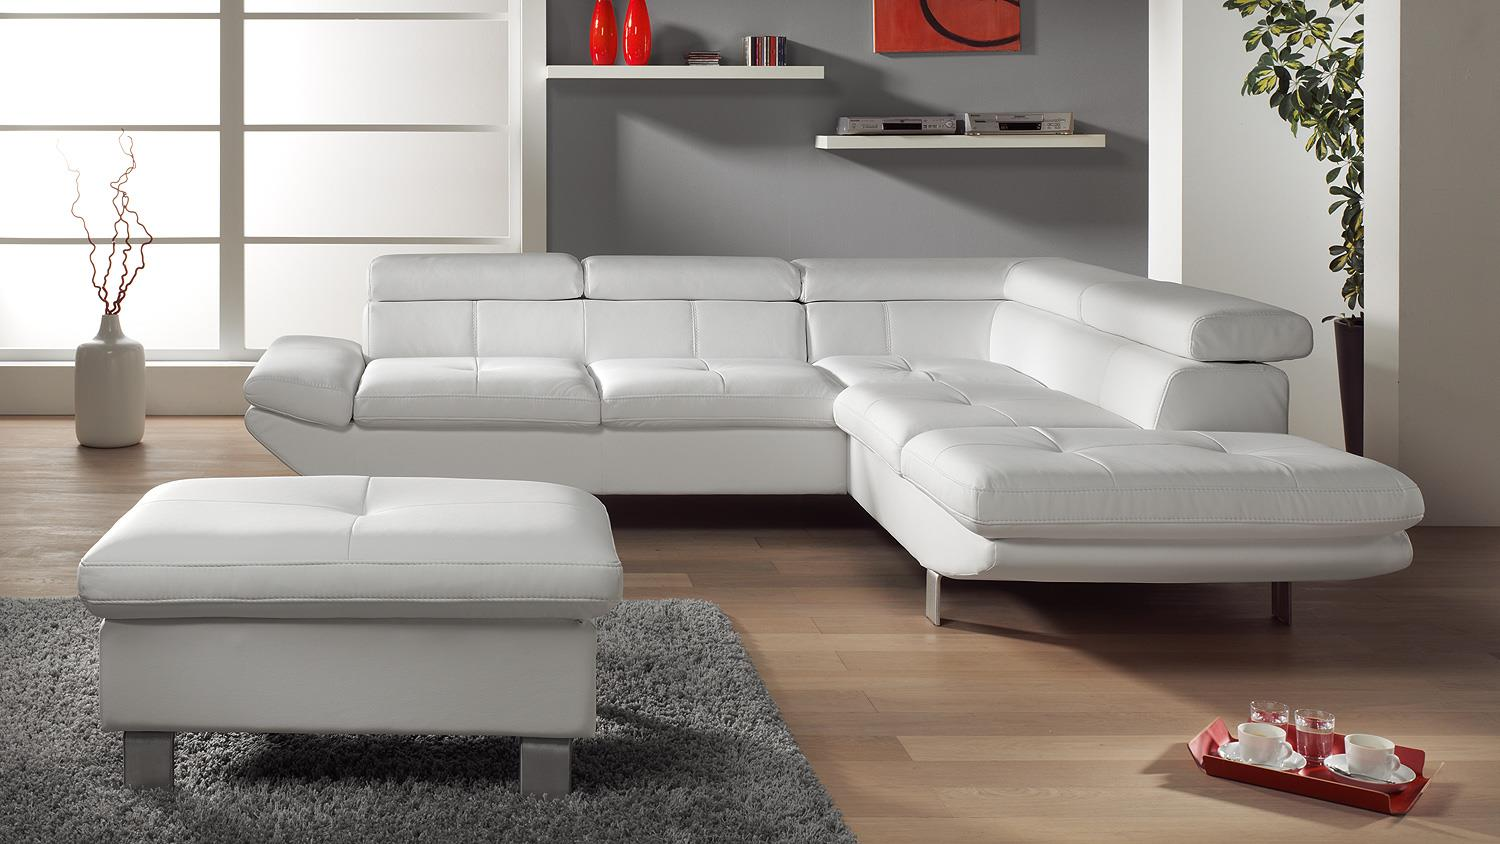 Wohnlandschaft carrier sofa in wei mit bettfunktion for Sofa mit bettfunktion